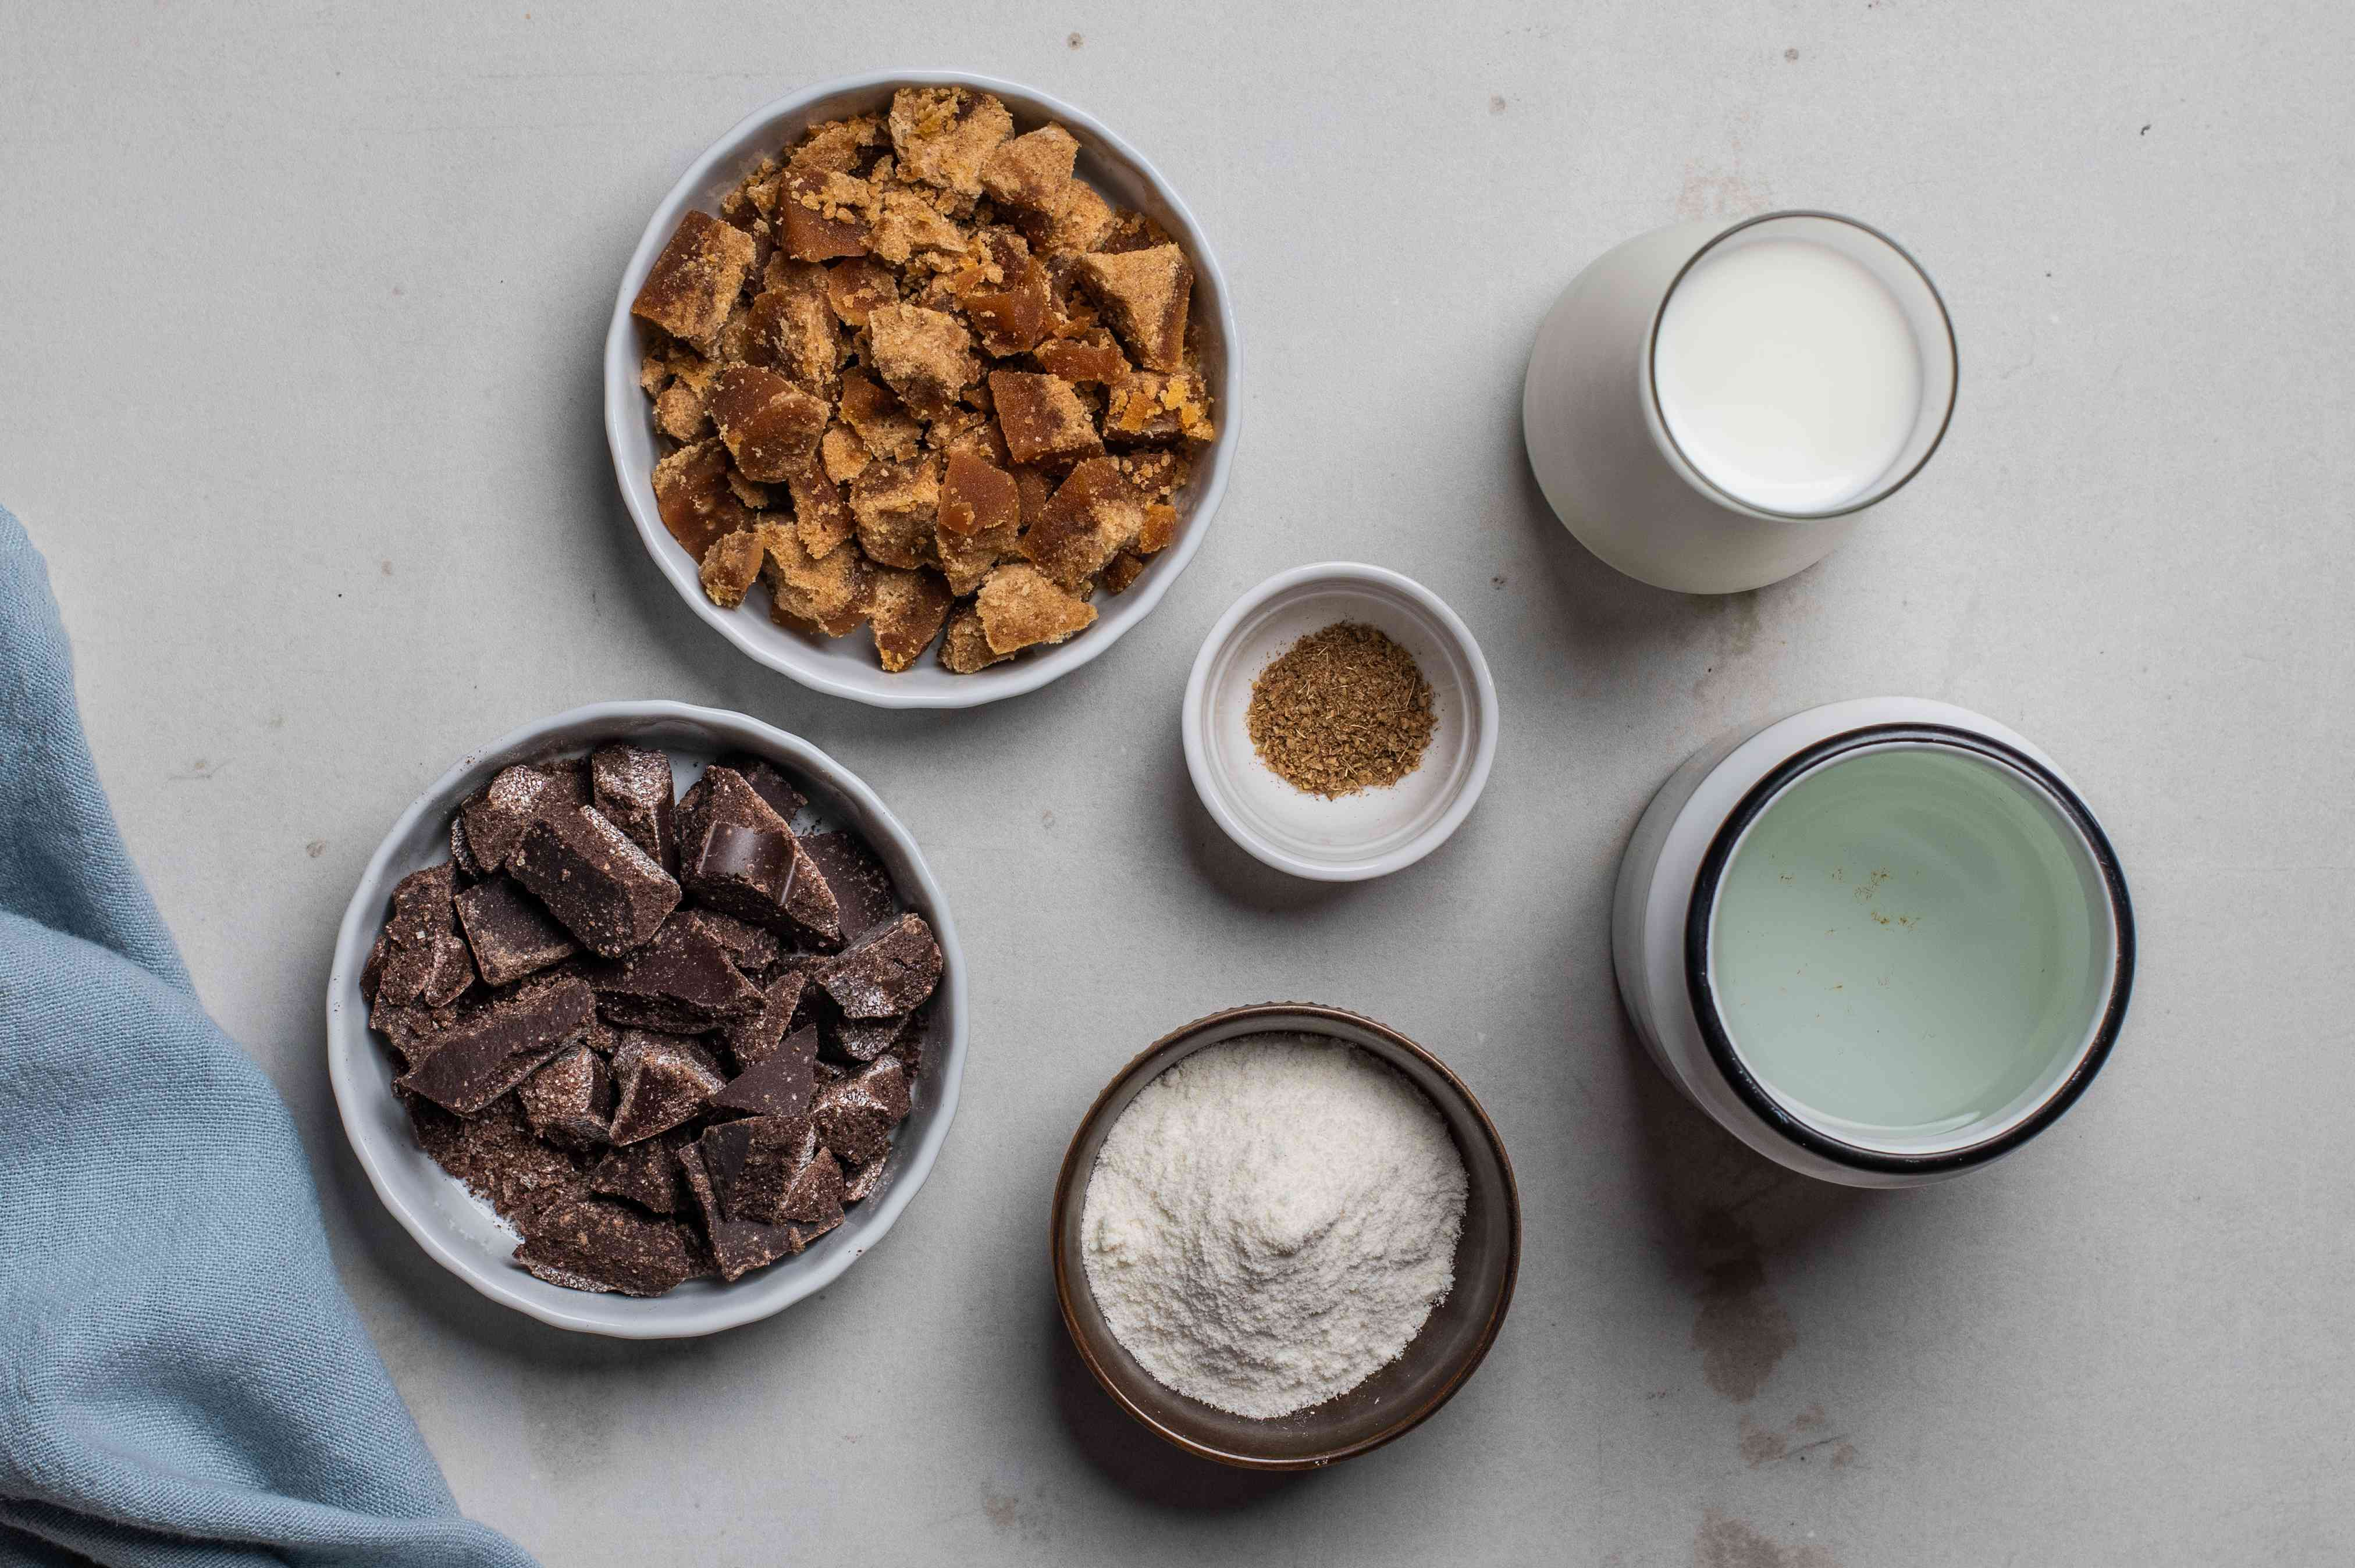 Ingredients for champurrado chocolate drink